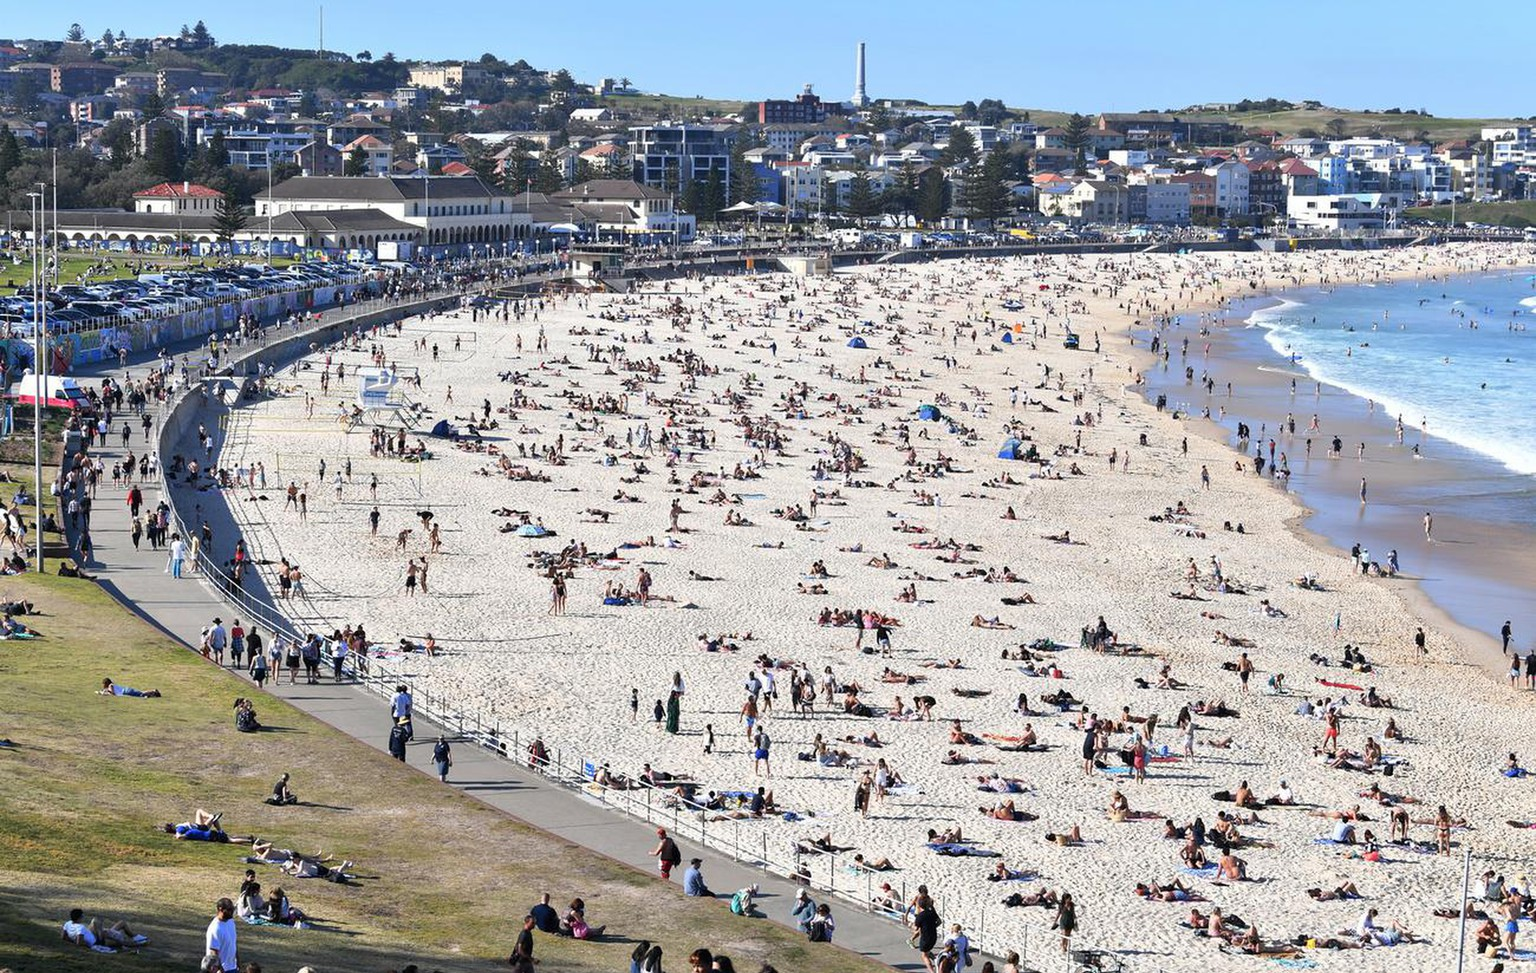 epa08634974 People crowd Bondi Beach as warm weather returns to the east coast of Australia in Sydney, Australia, 30 August 2020. Australia has reached another two pandemic milestones, recording its 600th death and over six million virus tests. EPA/DEAN LEWINS AUSTRALIA AND NEW ZEALAND OUT